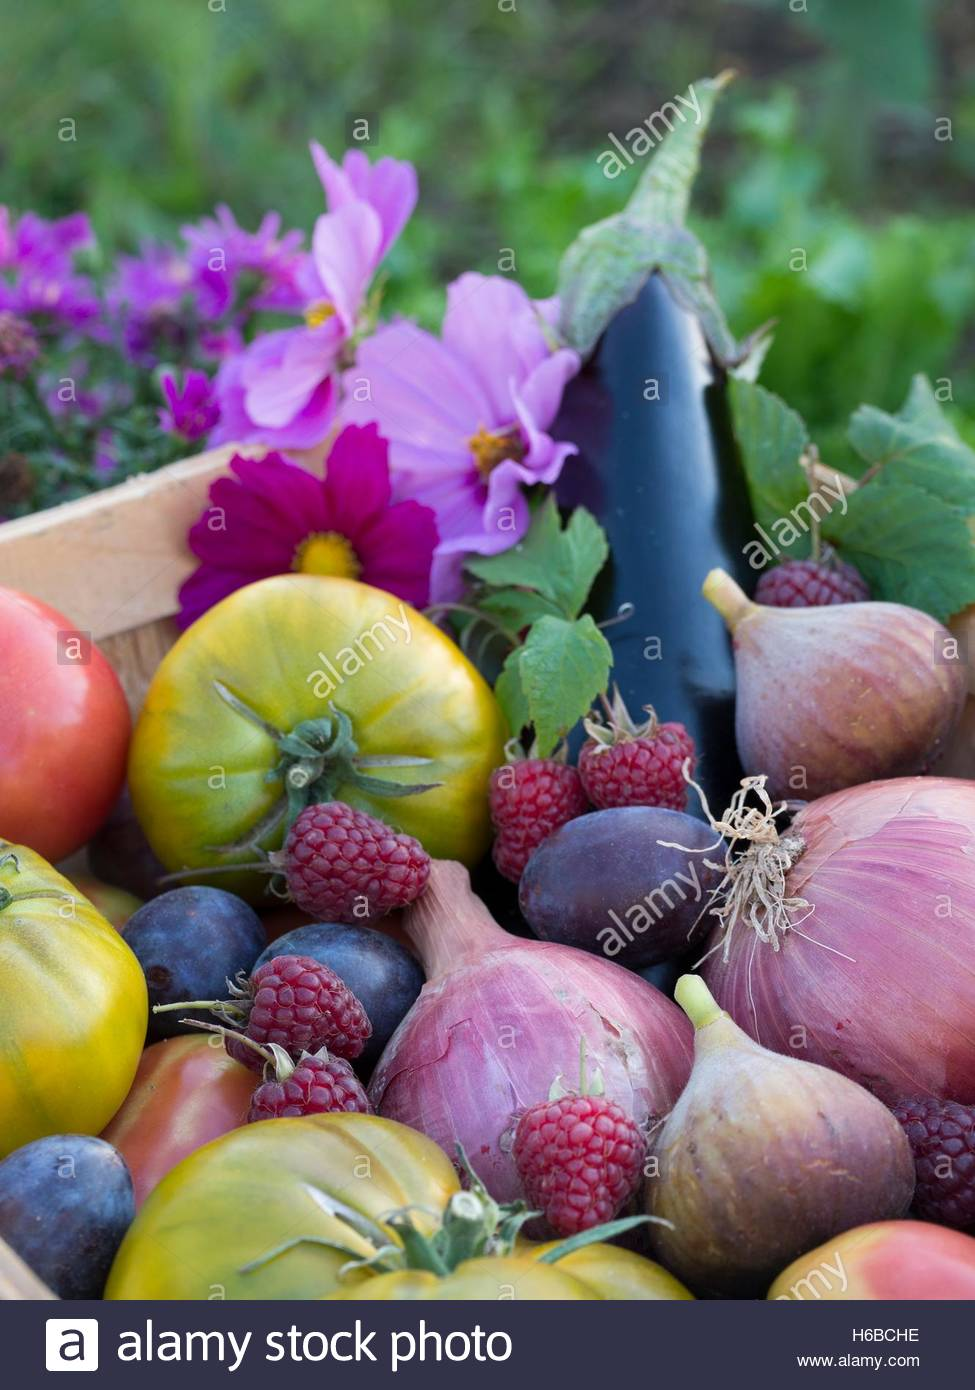 Fruits and summer vegetables crop (figs, raspberries, eggplants, tomatoes, oinons, plums) - Stock Image